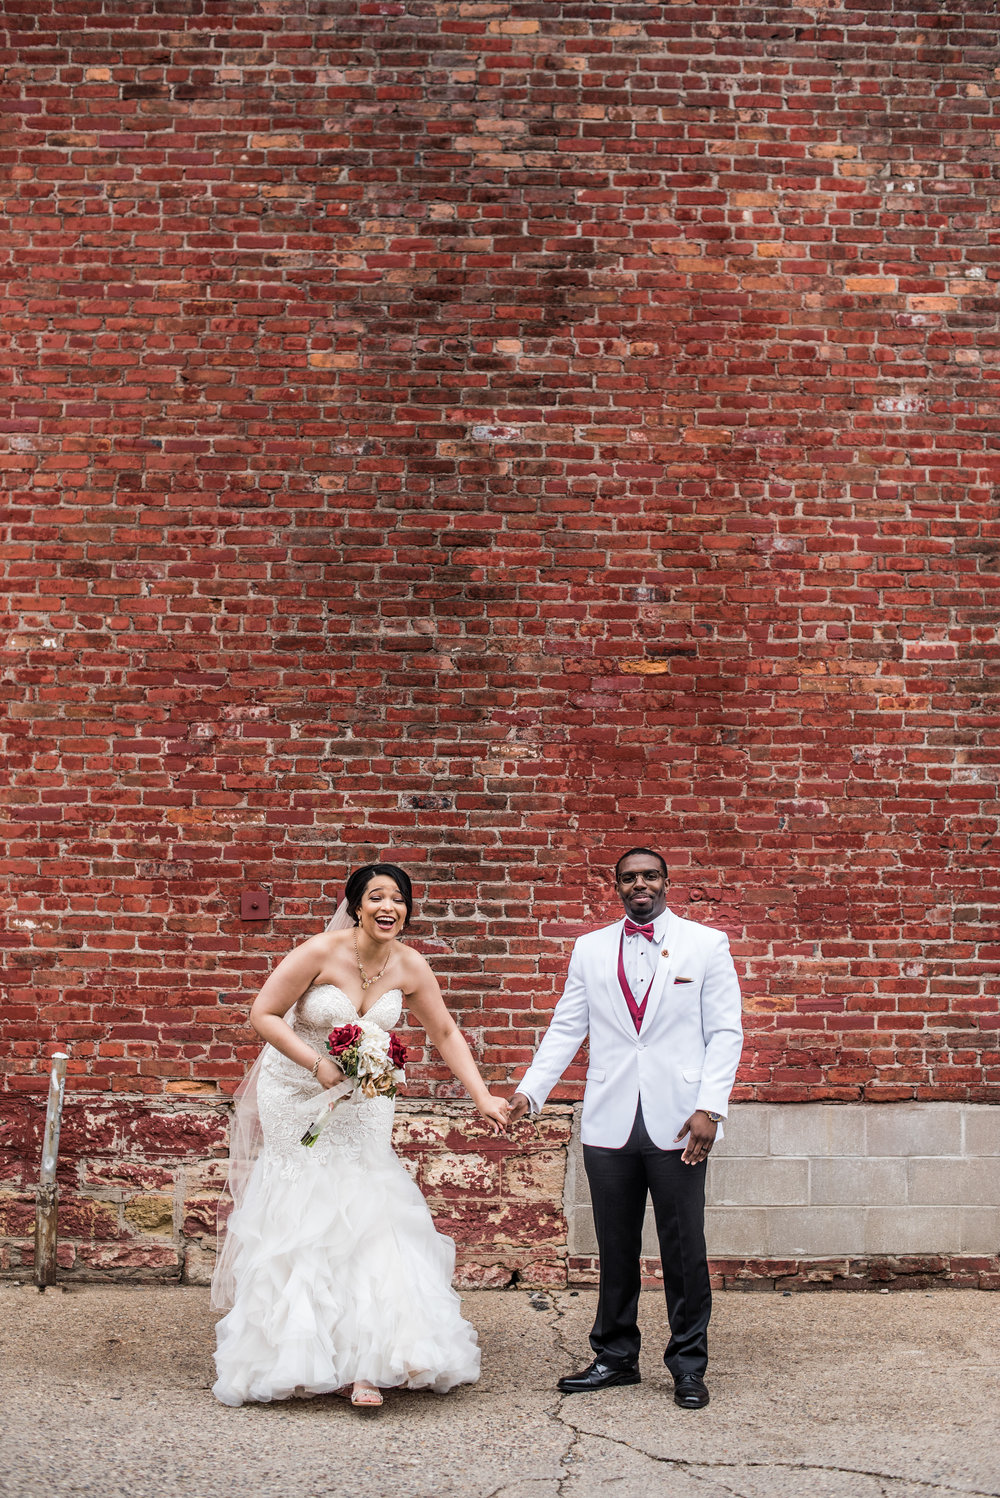 Burlington Iowa Wedding Midwest Photographer Melissa Cervantes _ Chantelle and Isaiah 243f.jpg